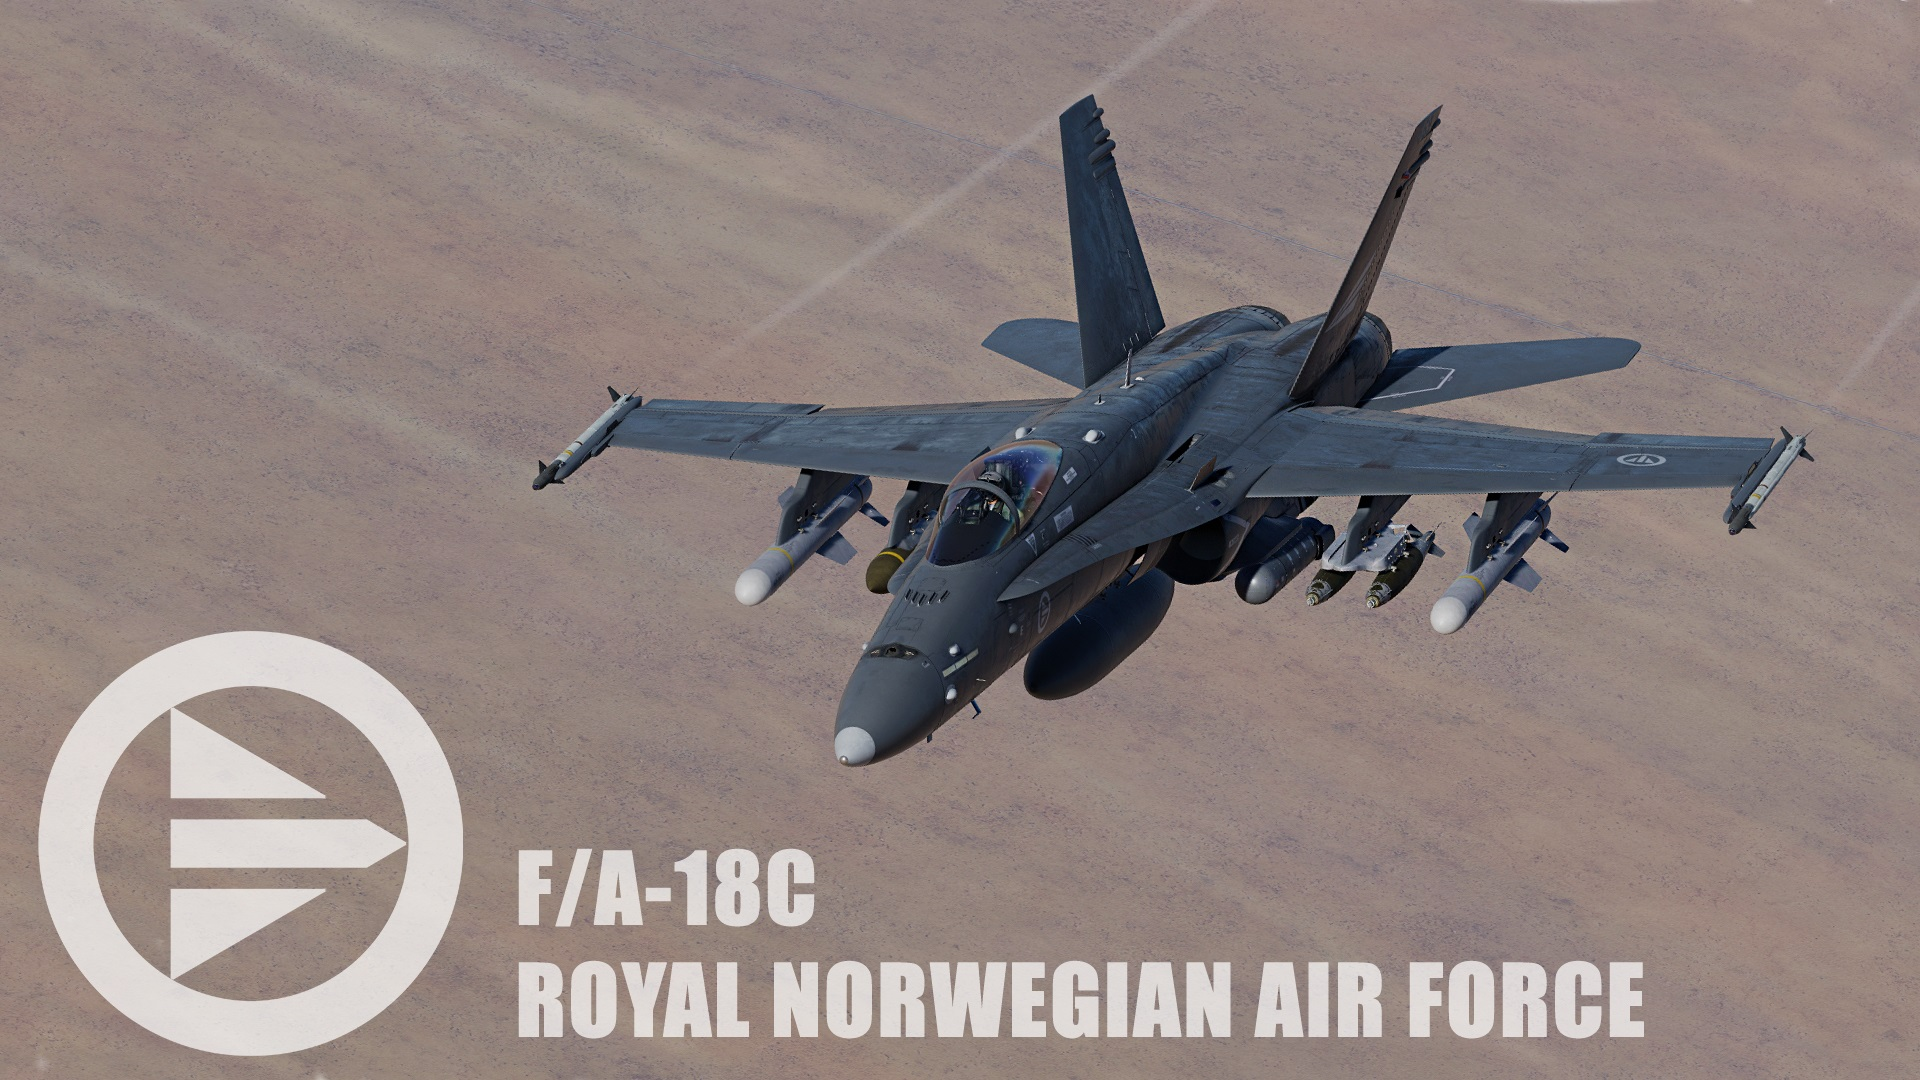 F/A-18C - Royal Norwegian Air Force - Low Visibility Liveries